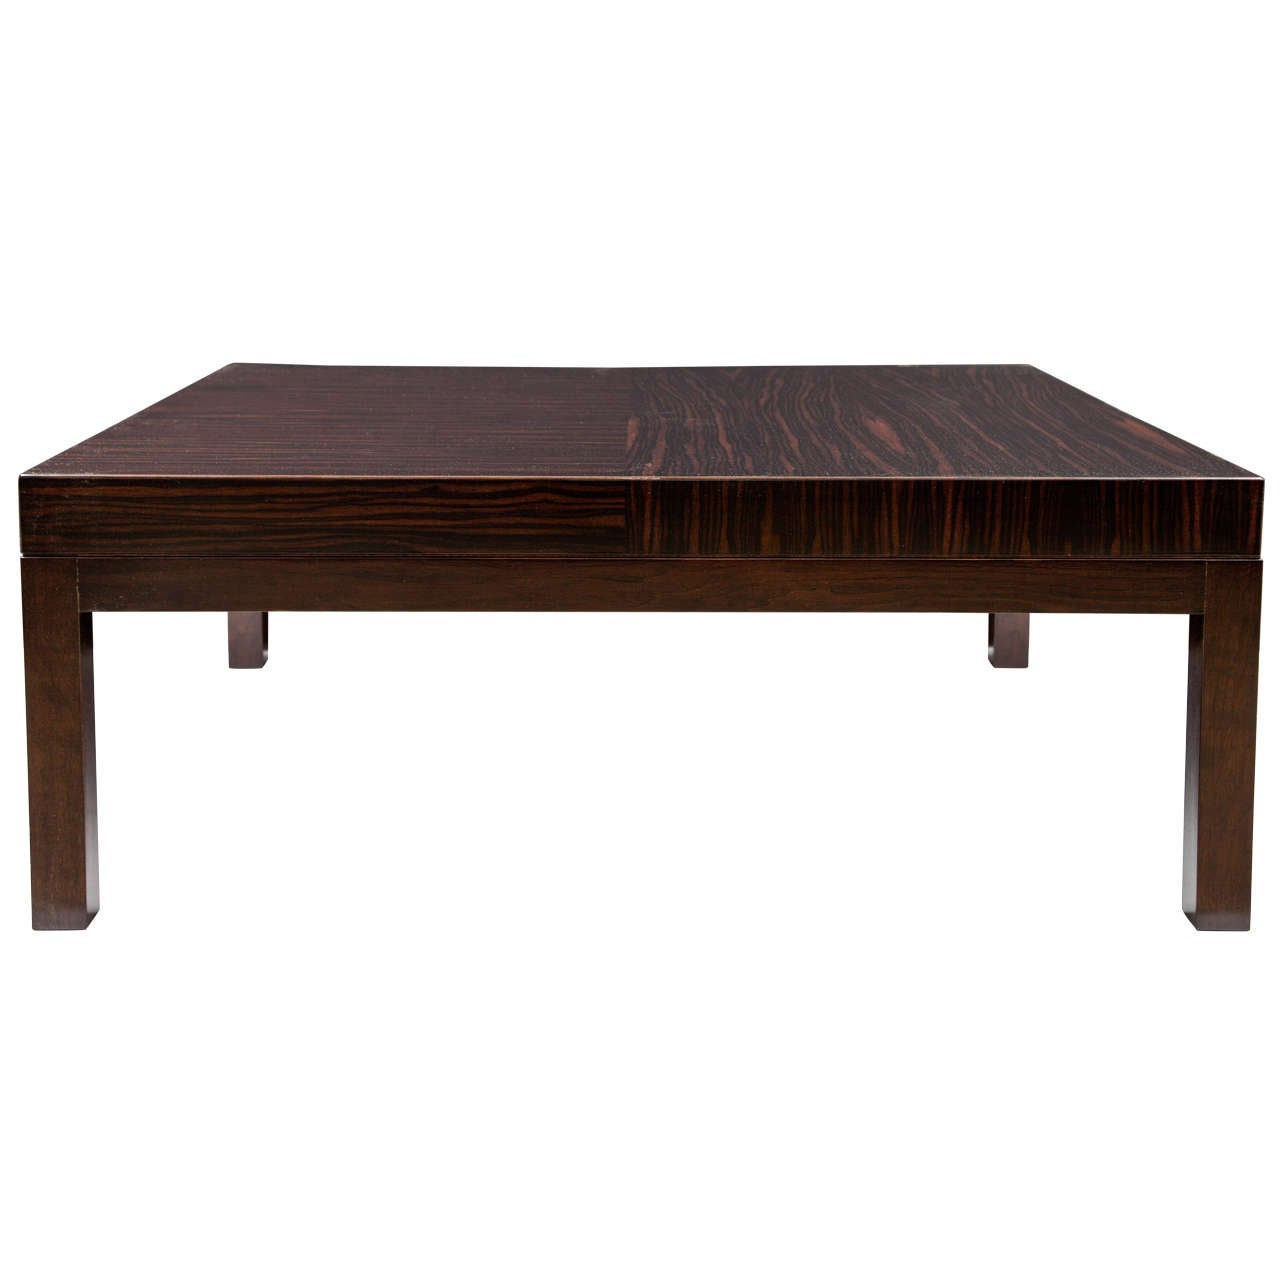 Boke macassar ebony coffee table by christian liaigre for Spl table 1998 99